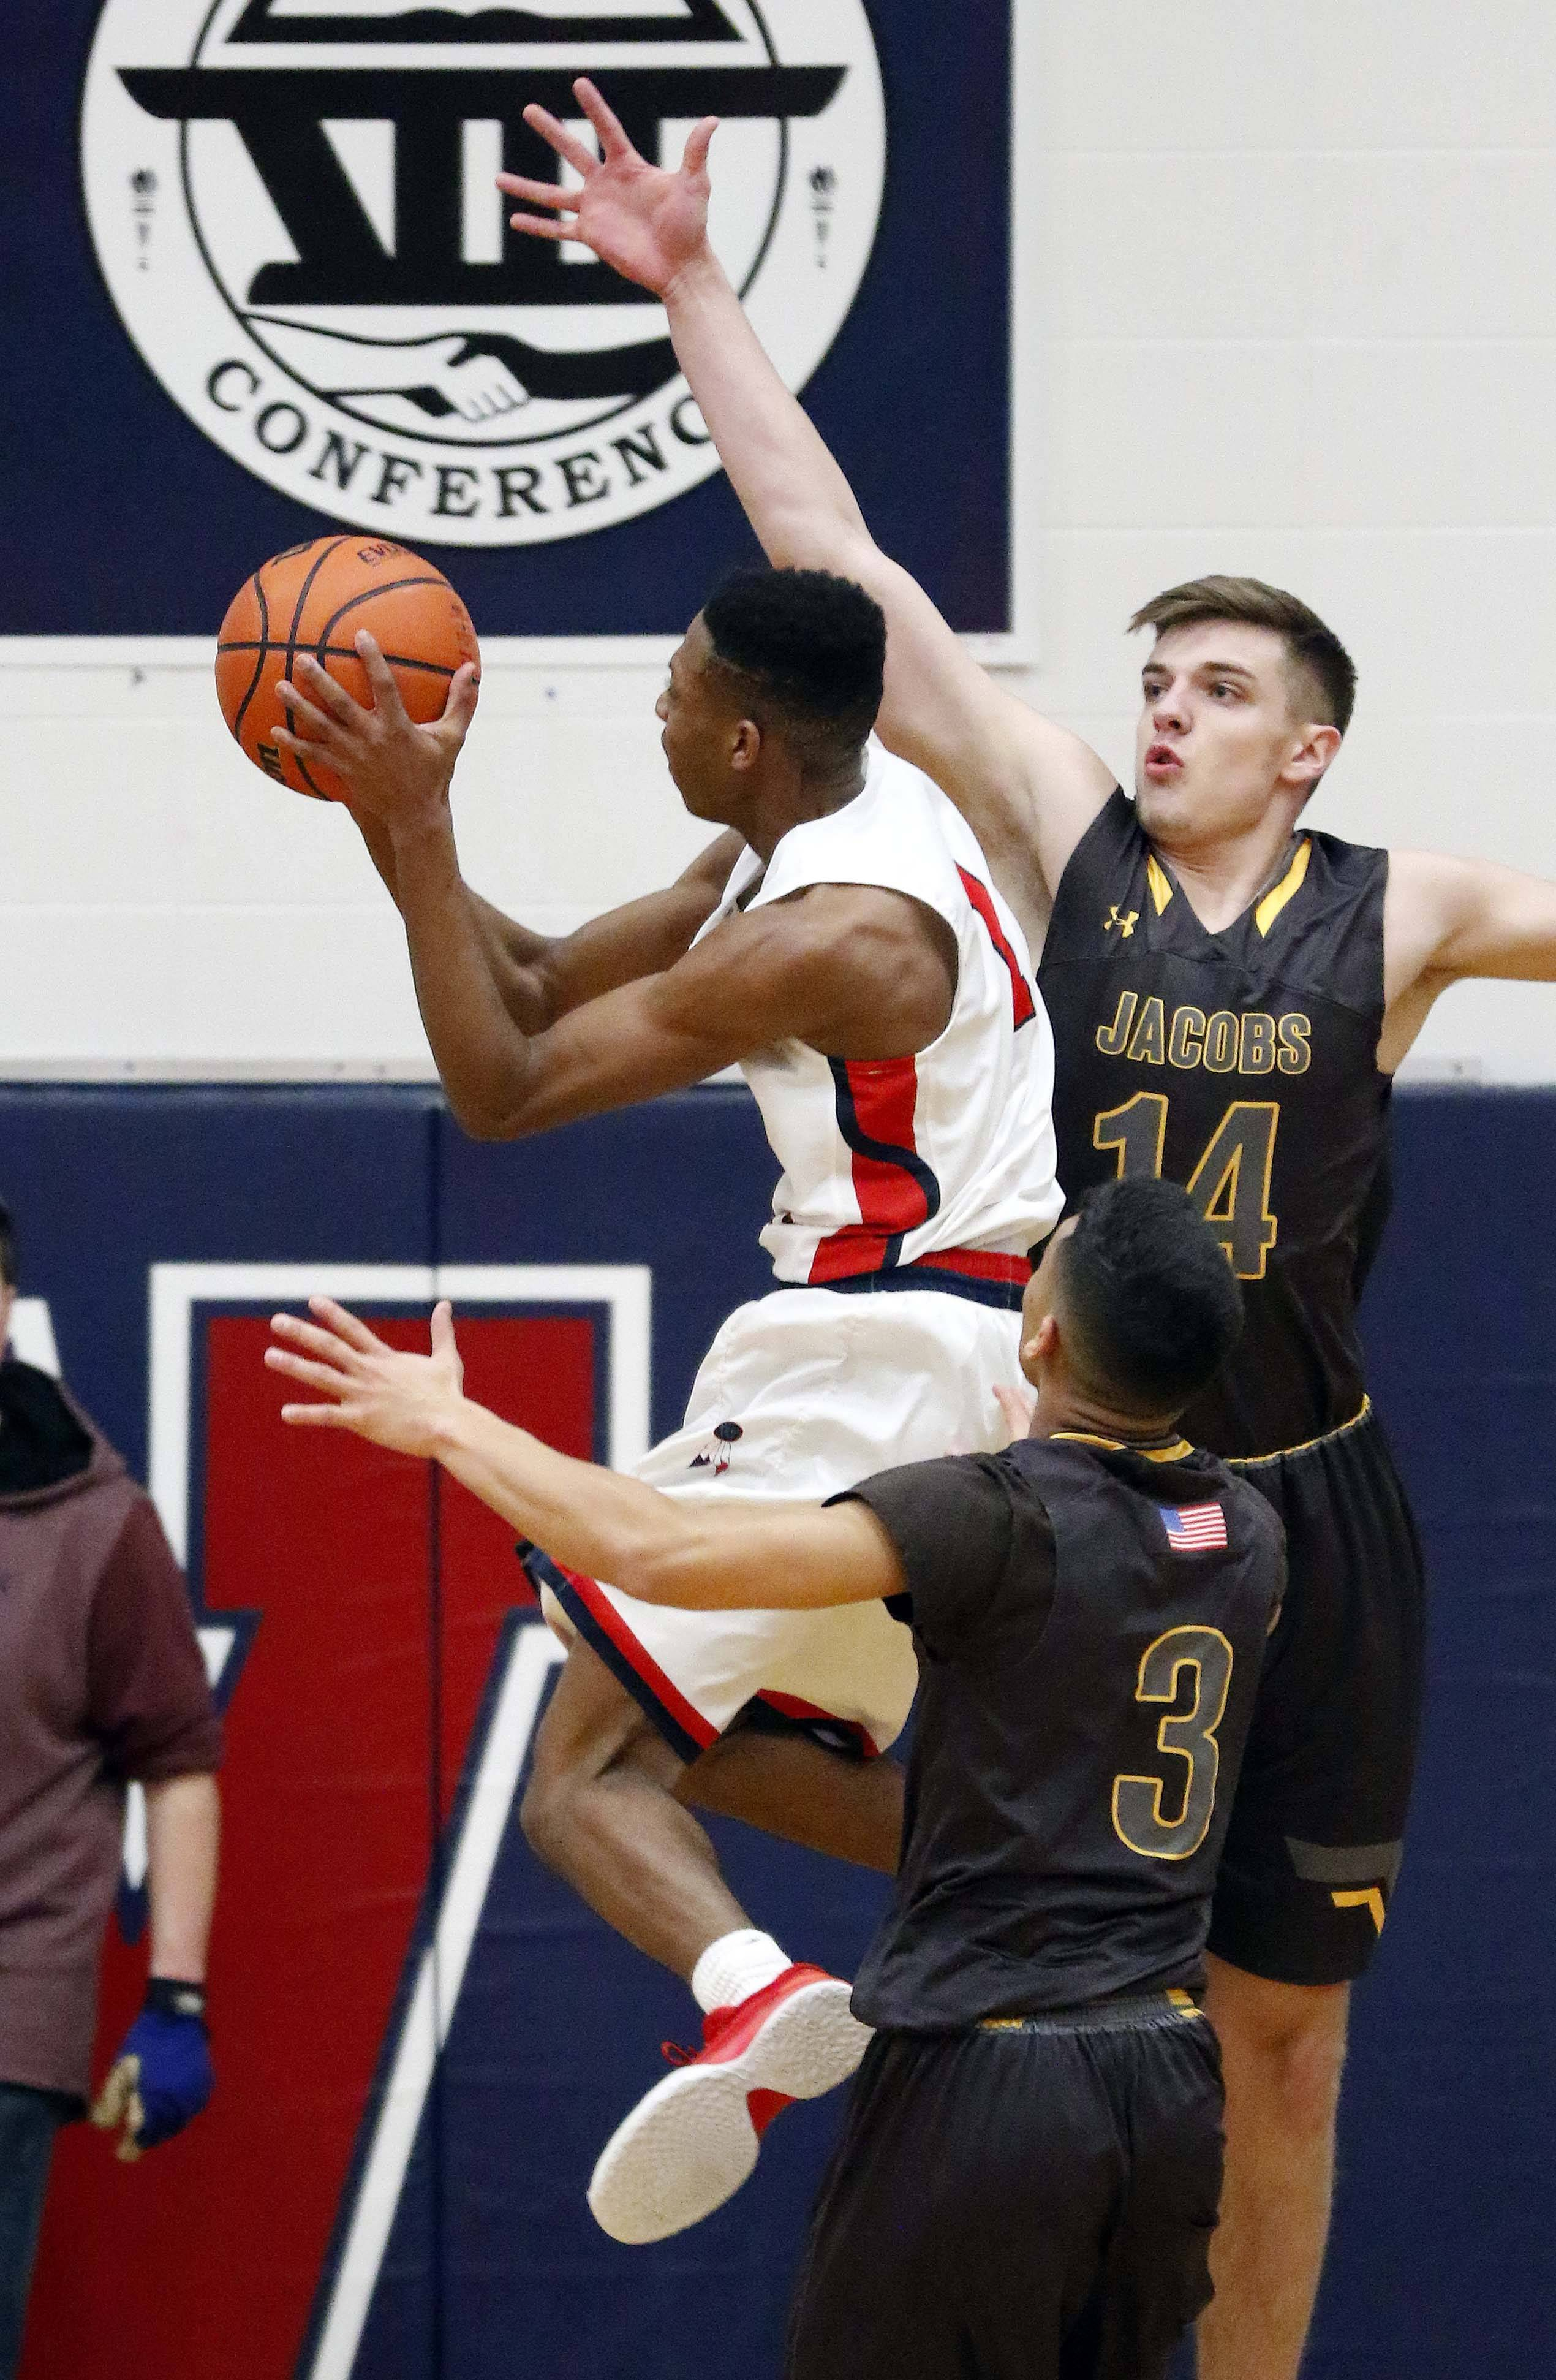 West Aurora guard Traevon Brown goes to the hoop past Jacobs guards Ajani Rodriguez and Ryan Phillips Saturday during basketball at West Aurora High School.